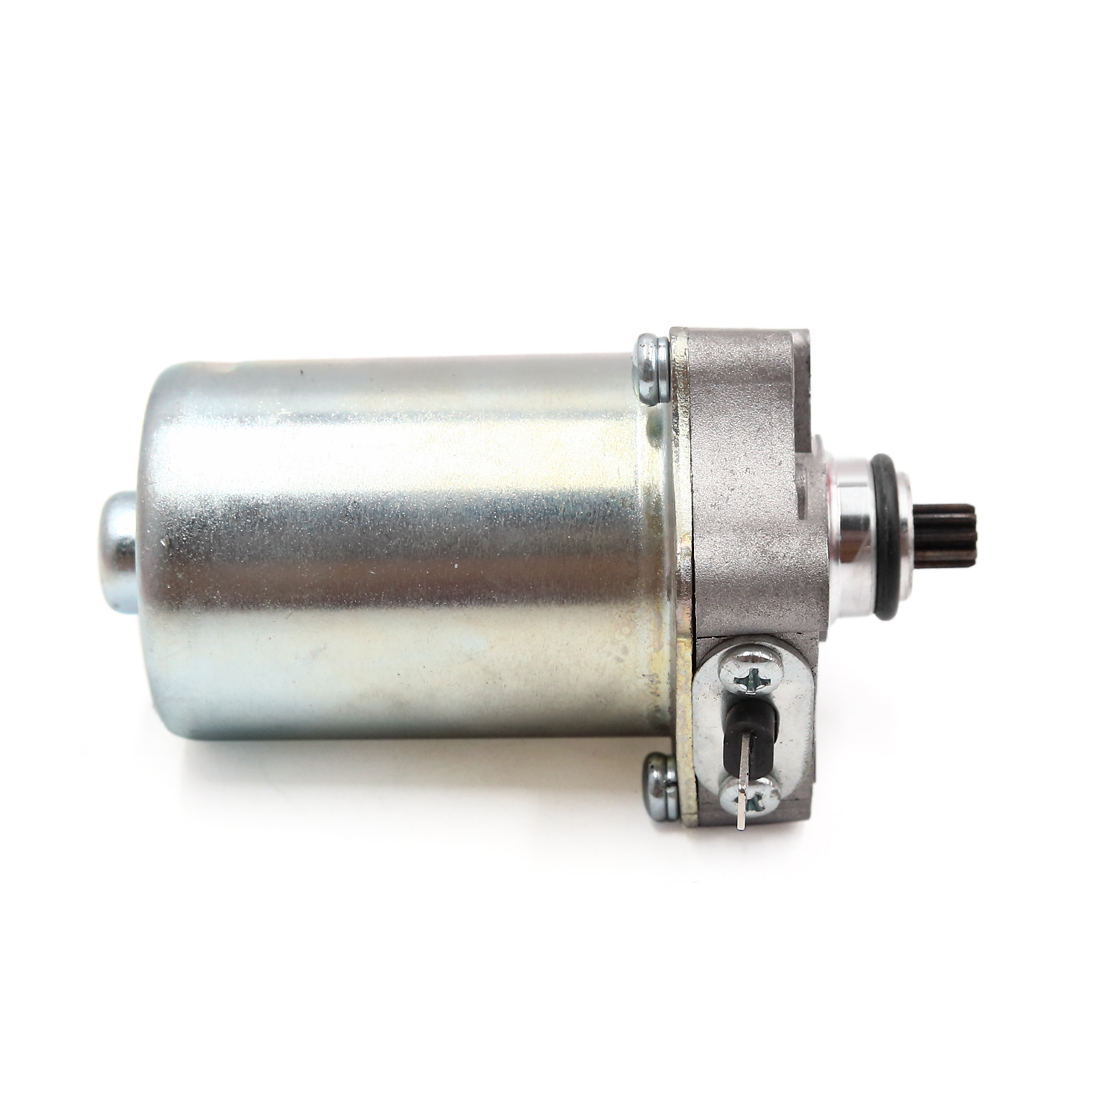 Silver Tone Metal Motorcycle Motorbike Engine Power Starter Motor for WH-100 - image 2 of 3